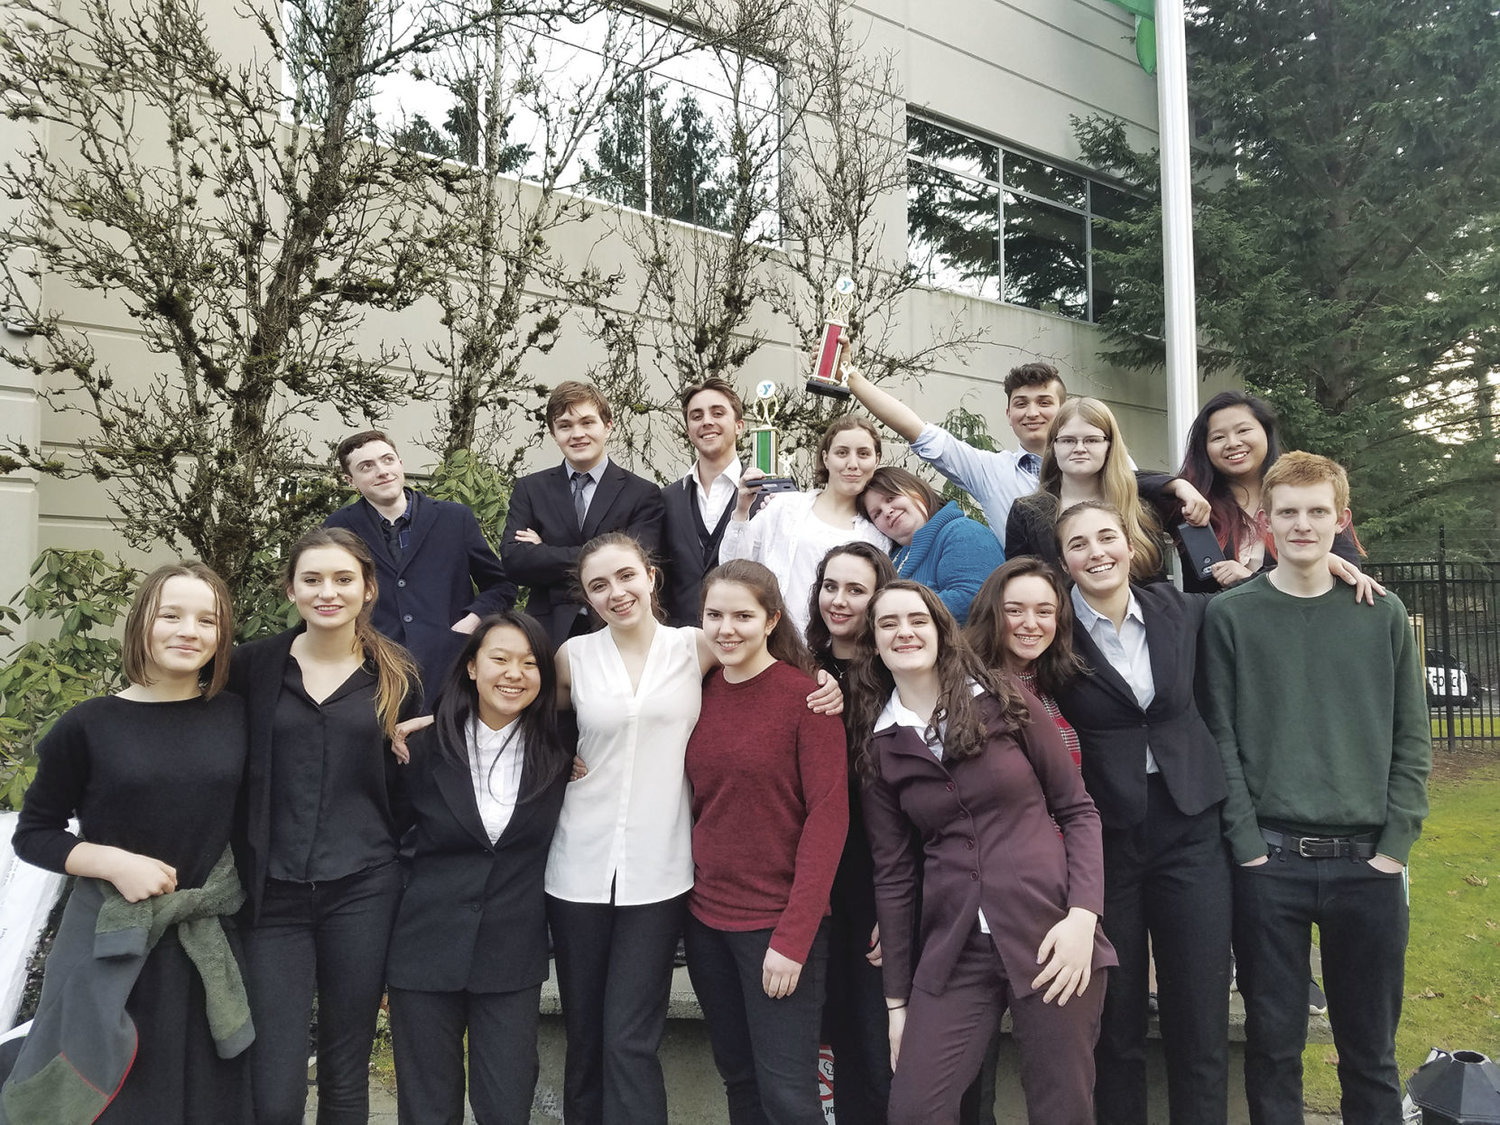 Two Port Townsend High School Mock Trial squads have qualified for the mock trial state championship. Pictured are (back row, from left) Ian Coates, Gannon Short, Brennan LaBrie, Moon Dean, Jennifer DeLong, Sam Jasper, Helena Stafford, An Nguyen, (front row) Emillia Nunn, Mikayla Hemsley, Sarah Lee, Corinne Pierson, Megan Jennings, Sophie Benskin, Lily Montgomery, Hannah Bahls, Maria Morrison and Joe Calodich. Courtesy photo